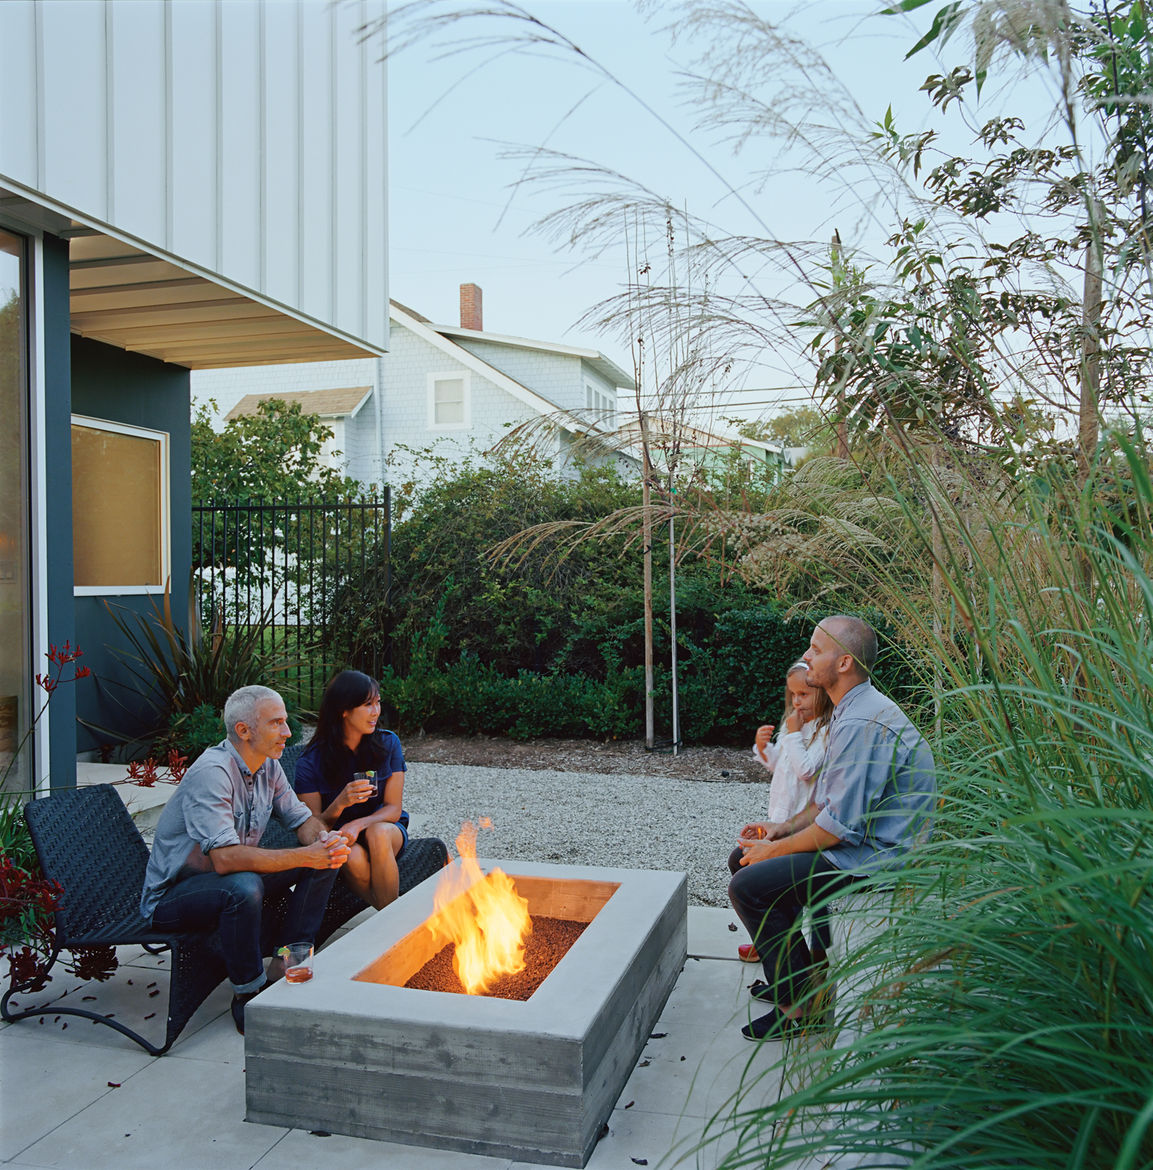 California isn't known for its front porch culture, but Grunbaum loves Venice's walk streets and their pedestrian vibe, so he employed landscape designer Stephanie Bartron to orient his small patio towards the street. The house itself acts as a windbreak,